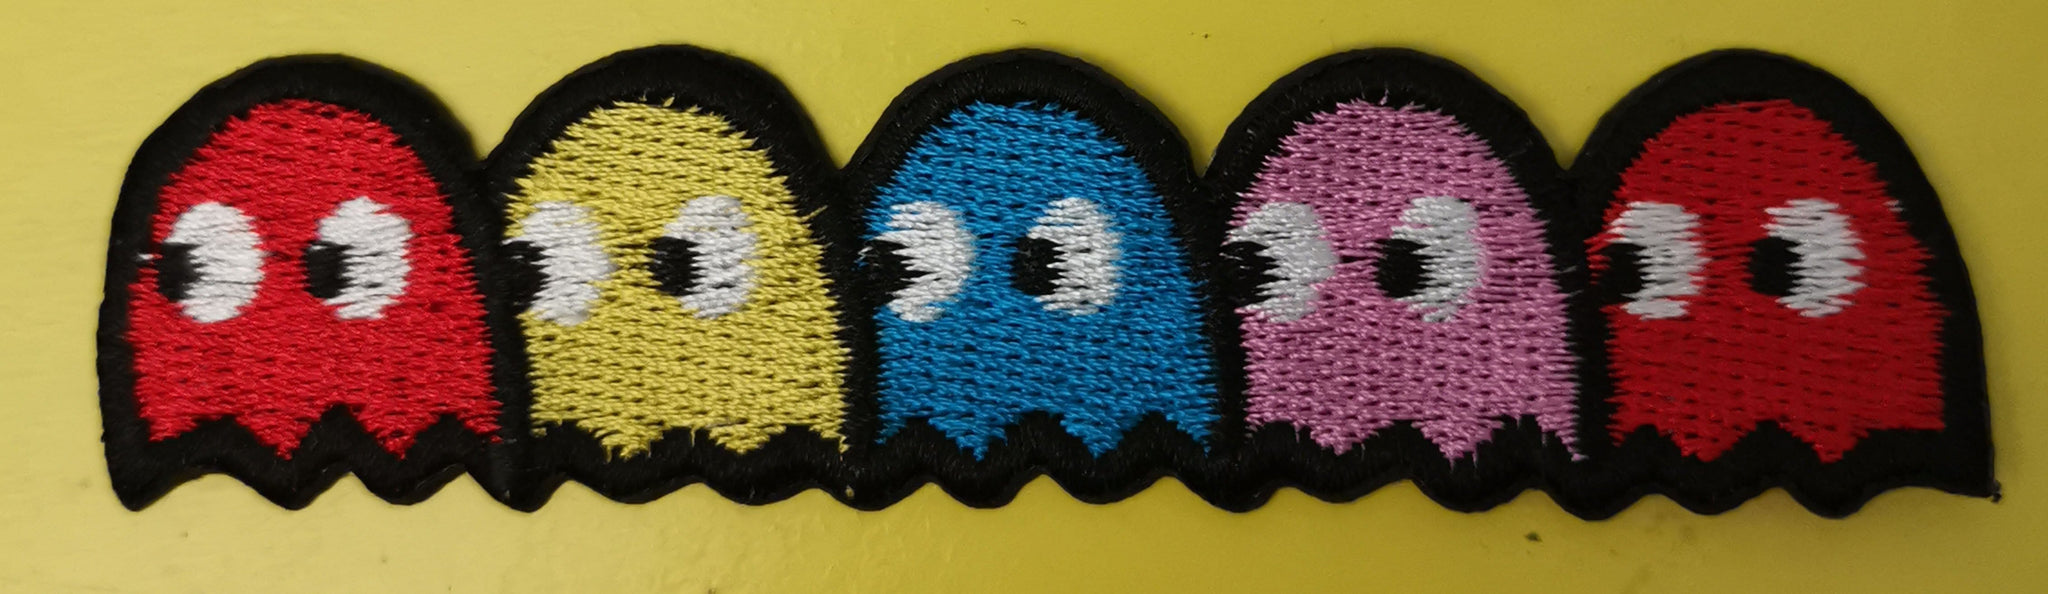 Pacman 2 Embroidered Iron on Patch